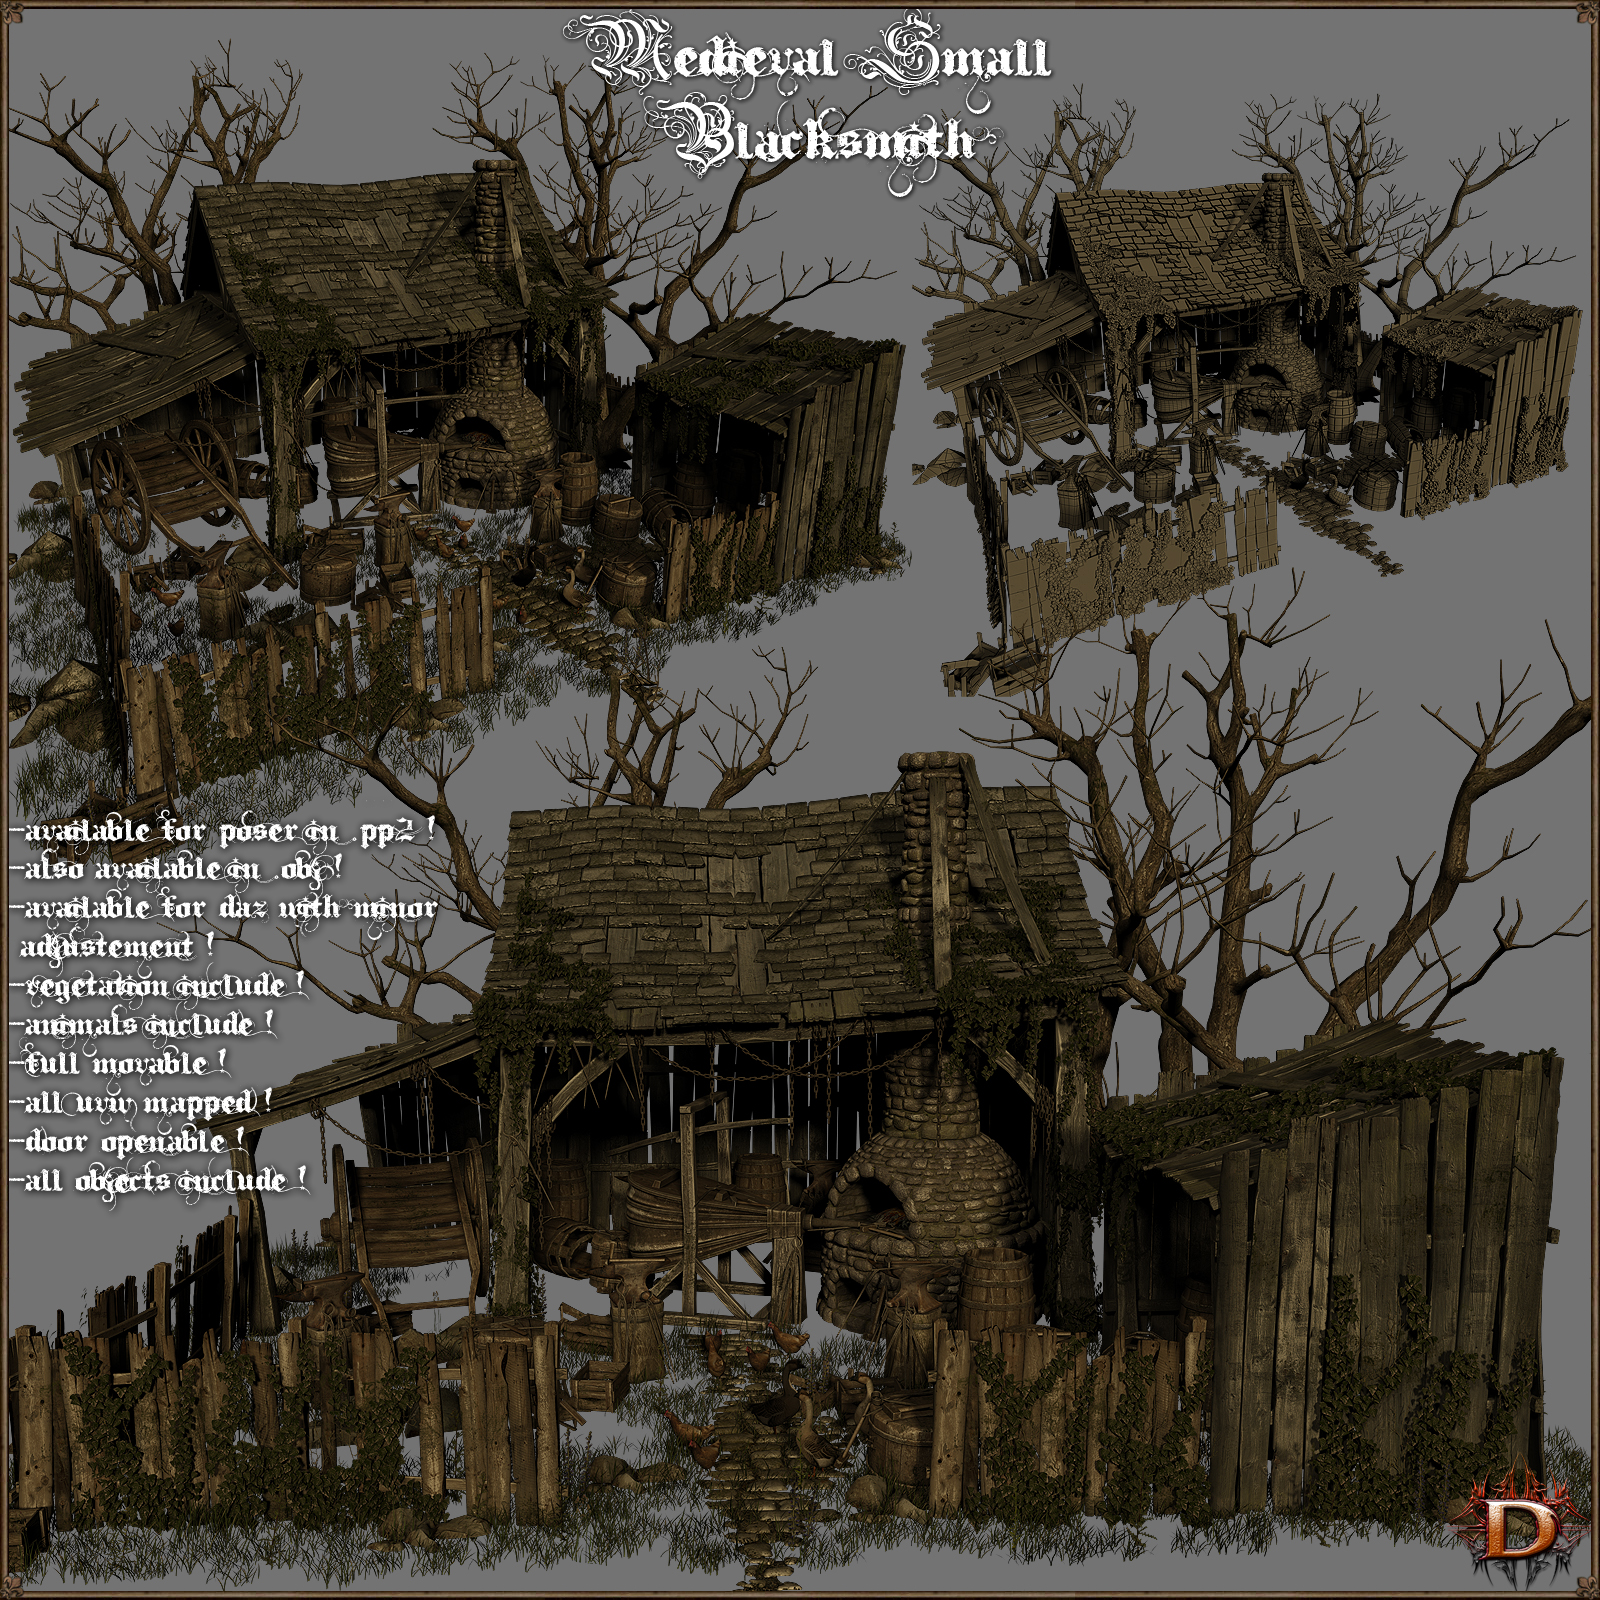 Medieval Small Blacksmith - Extended License